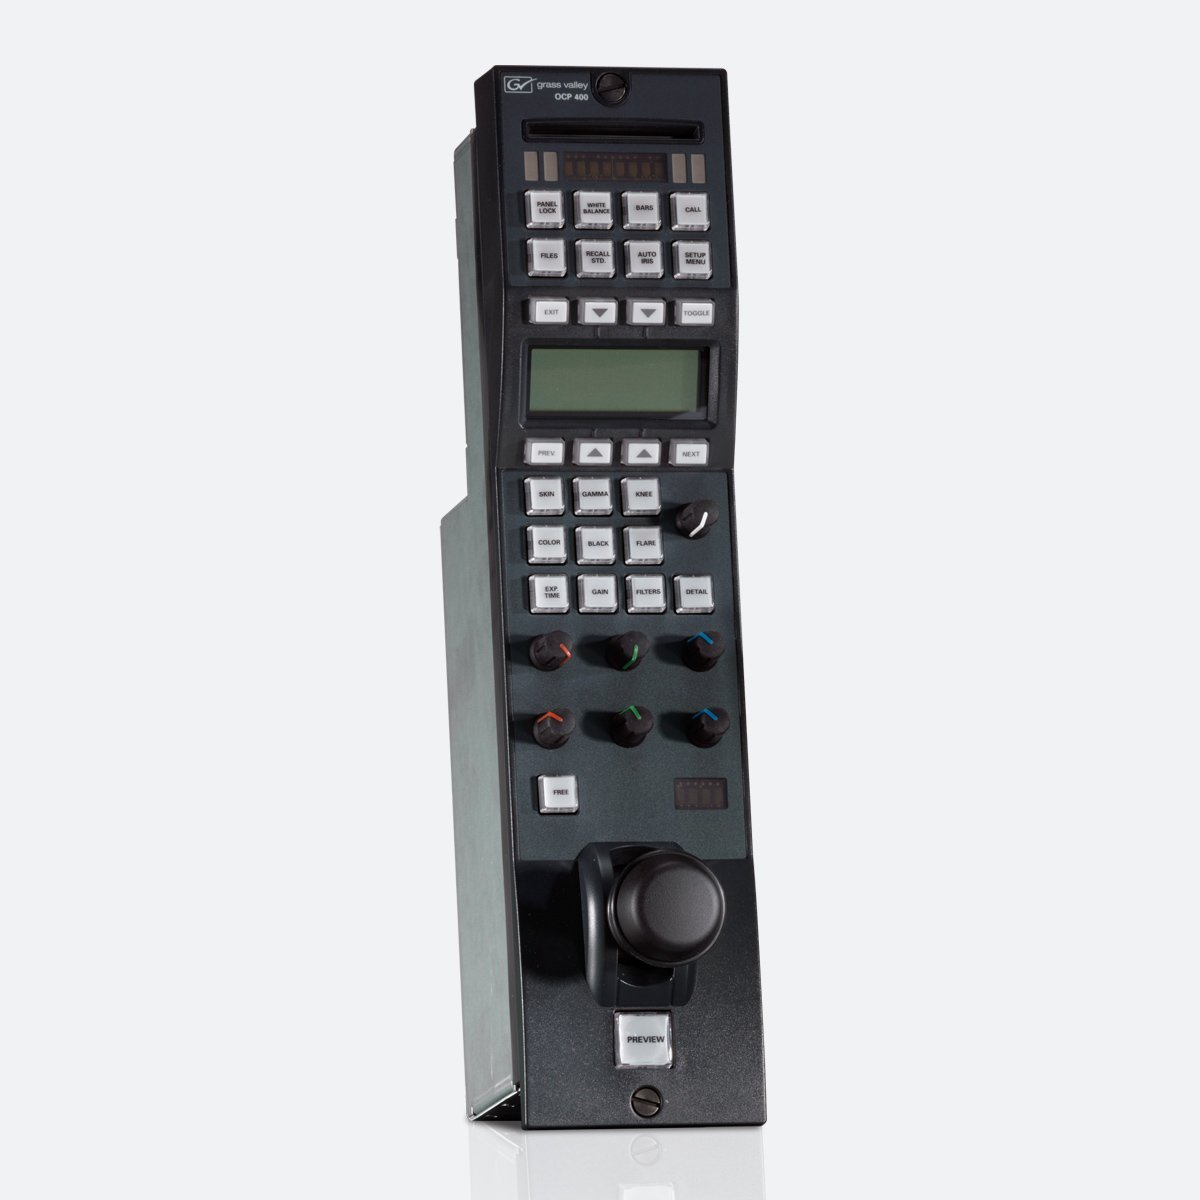 Grass Valley OCP-400 LDX/LDK Operational Control Panel